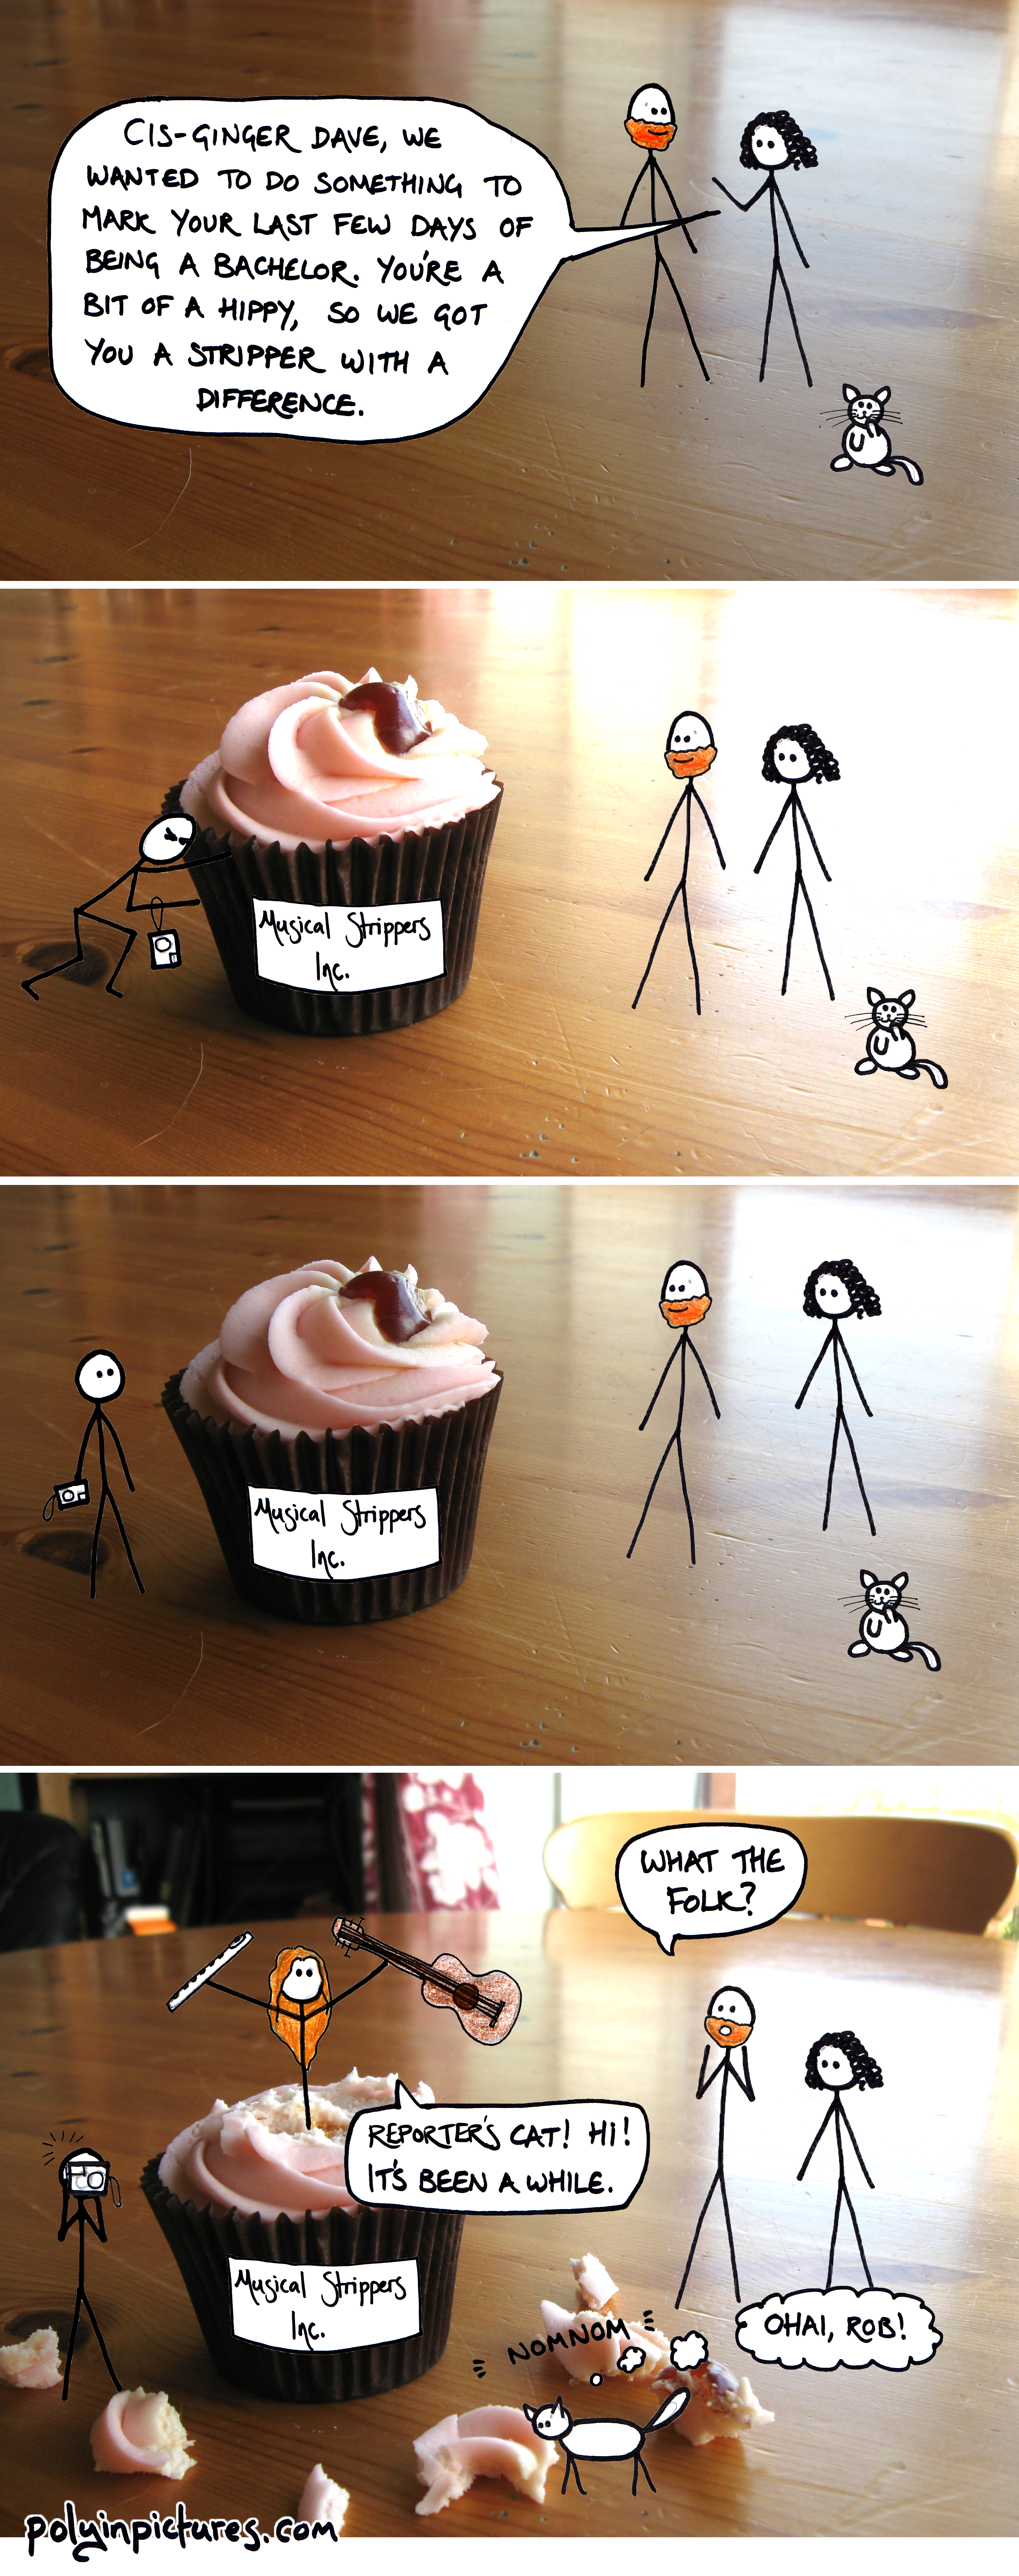 This comic was a great excuse to buy some cake. Also, I ate the cake as soon as I'd taken the photos but then I wanted to eat it again when I was making the comic.